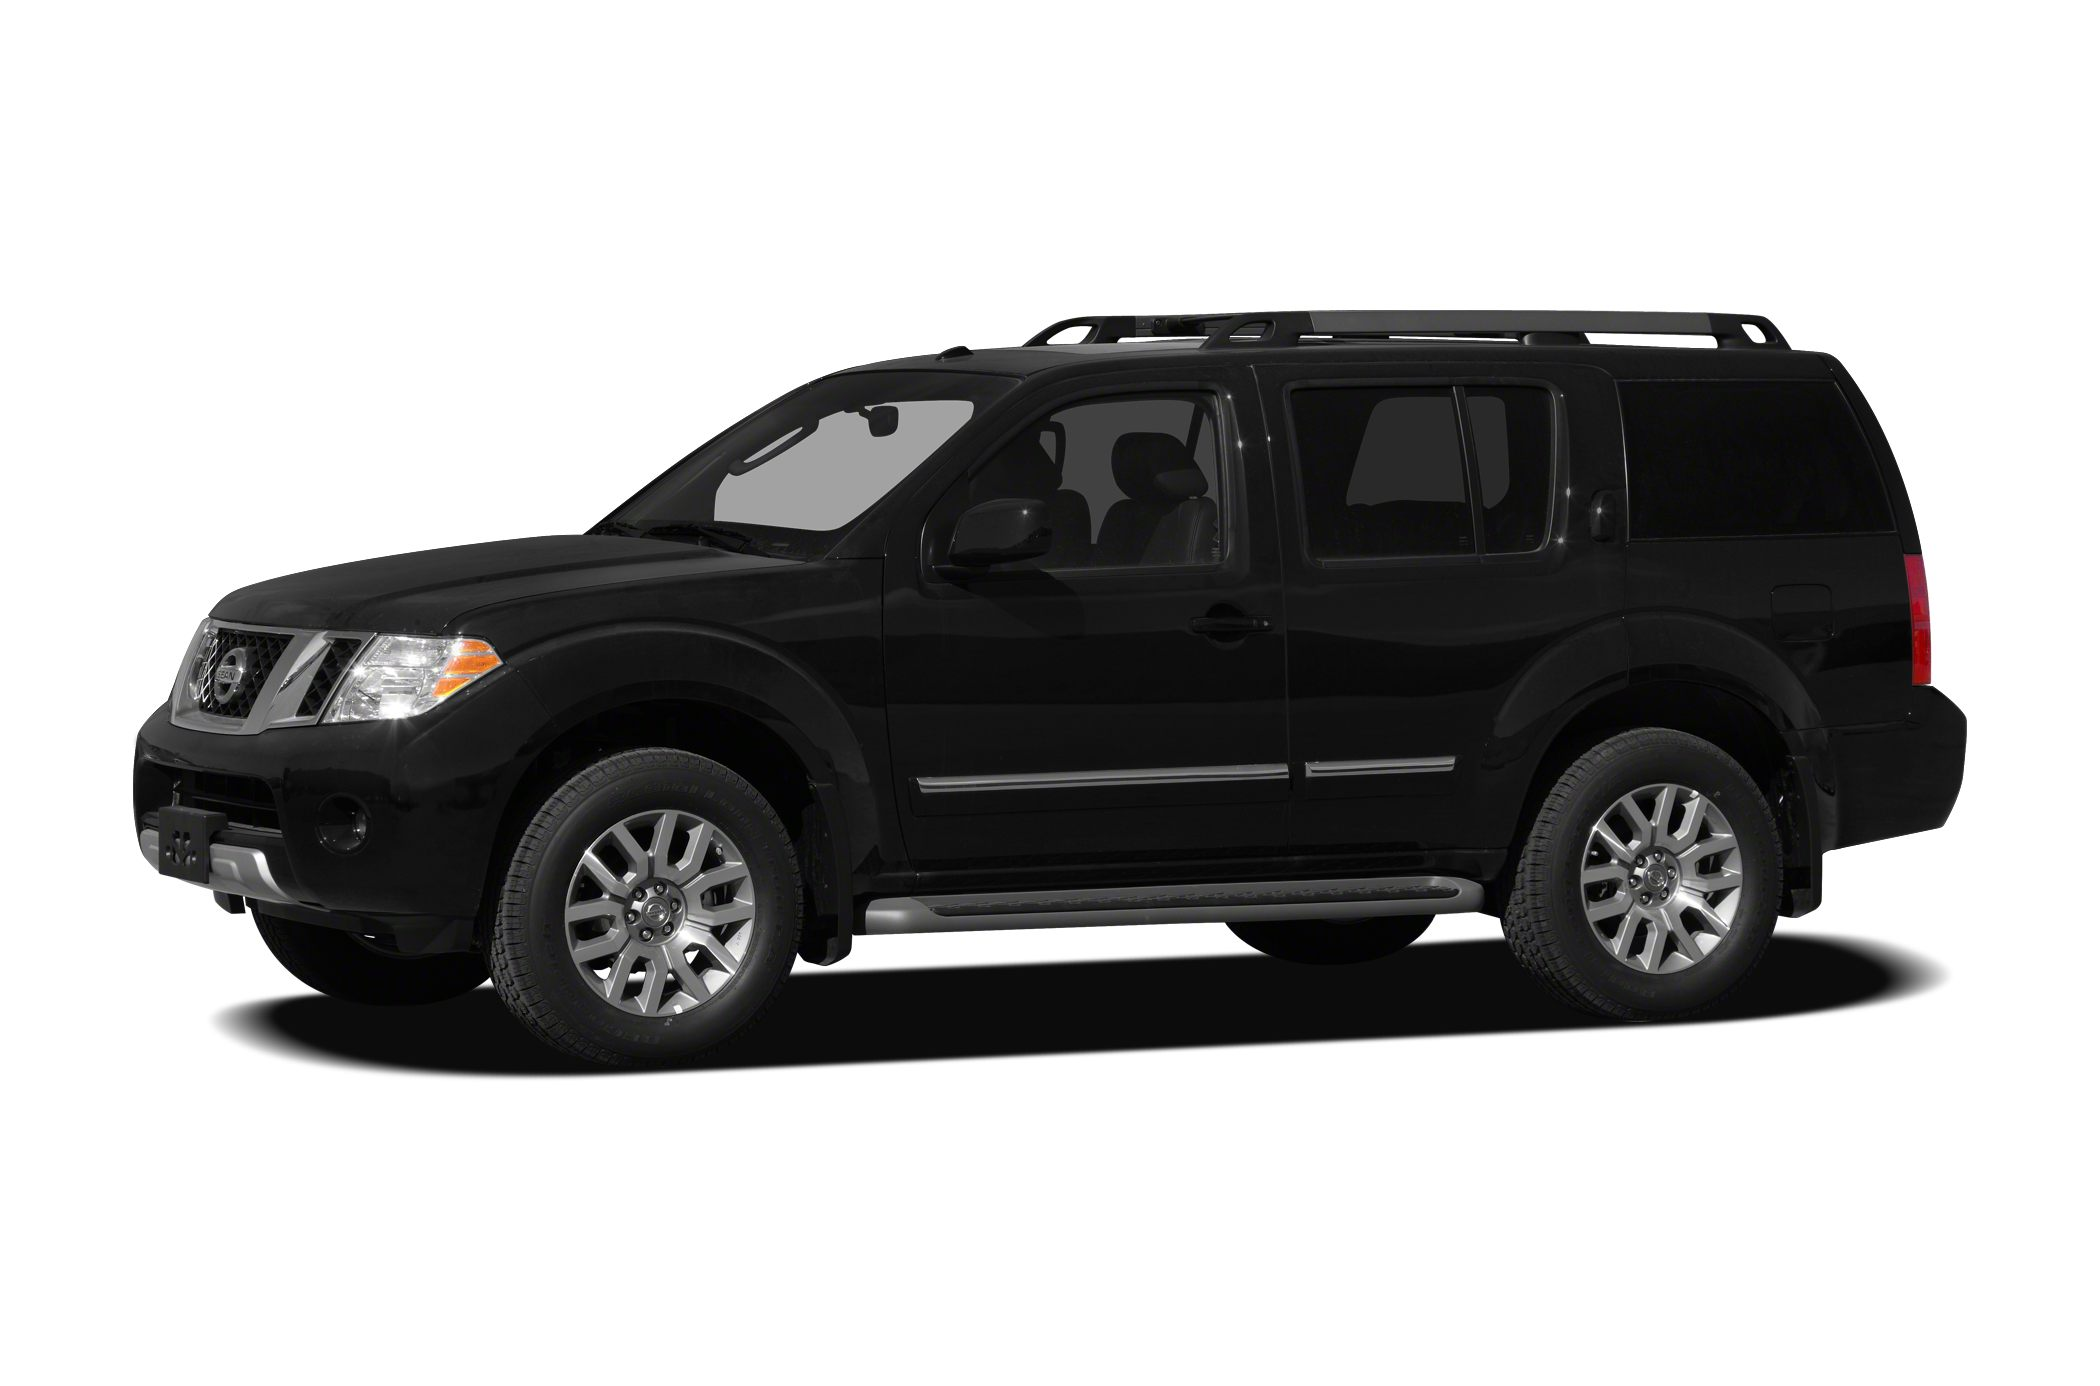 2012 Nissan Pathfinder LE SUV for sale in Toms River for $22,937 with 87,100 miles